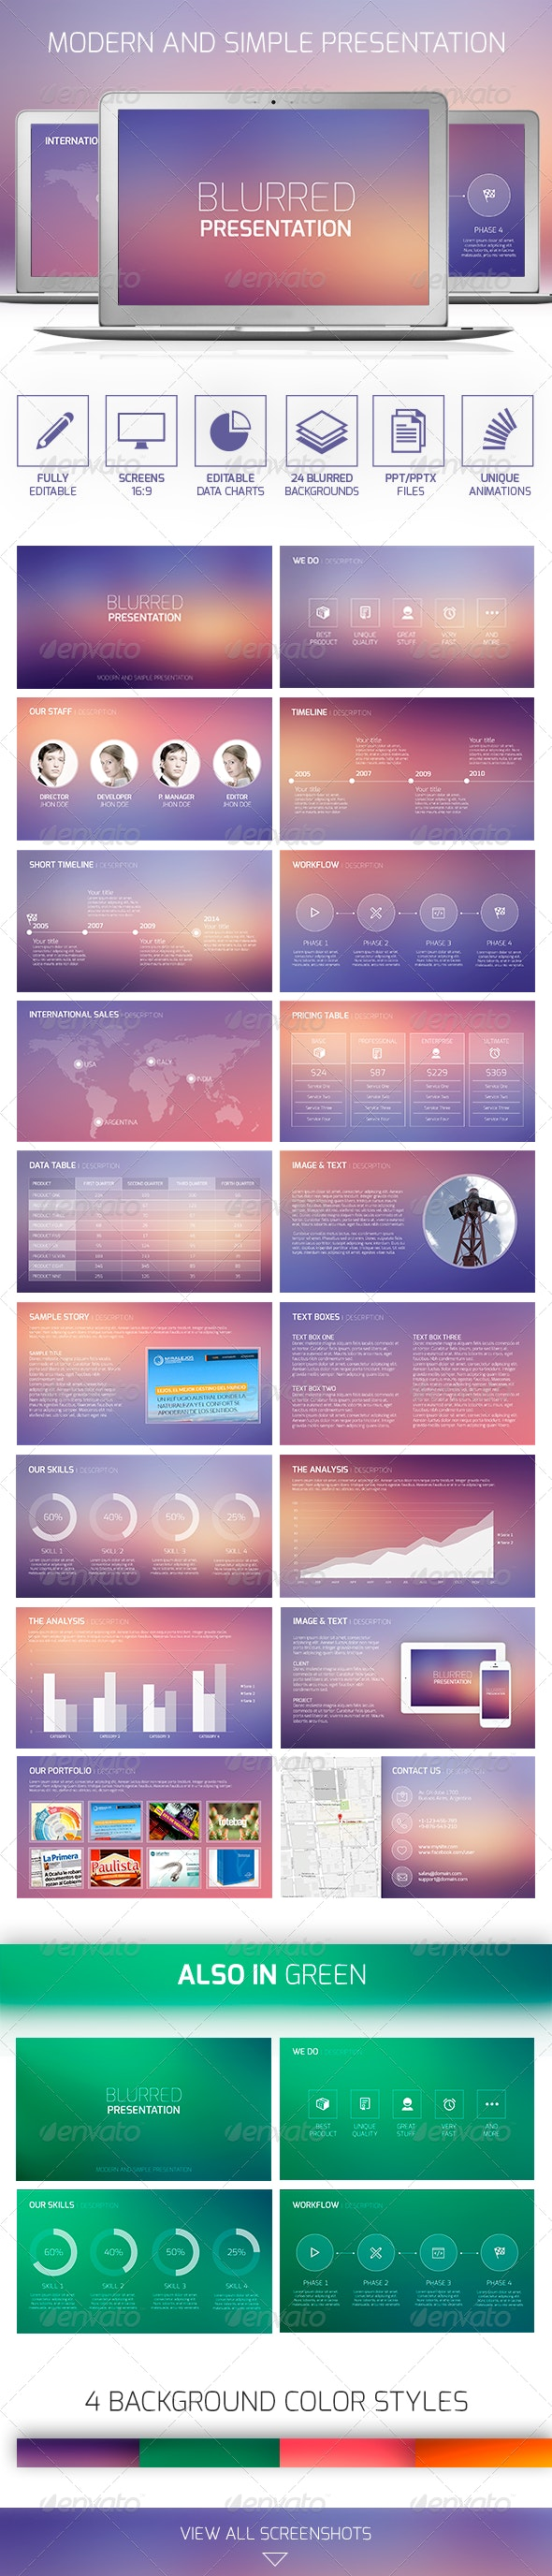 Blurred Presentation PowerPoint - PowerPoint Templates Presentation Templates